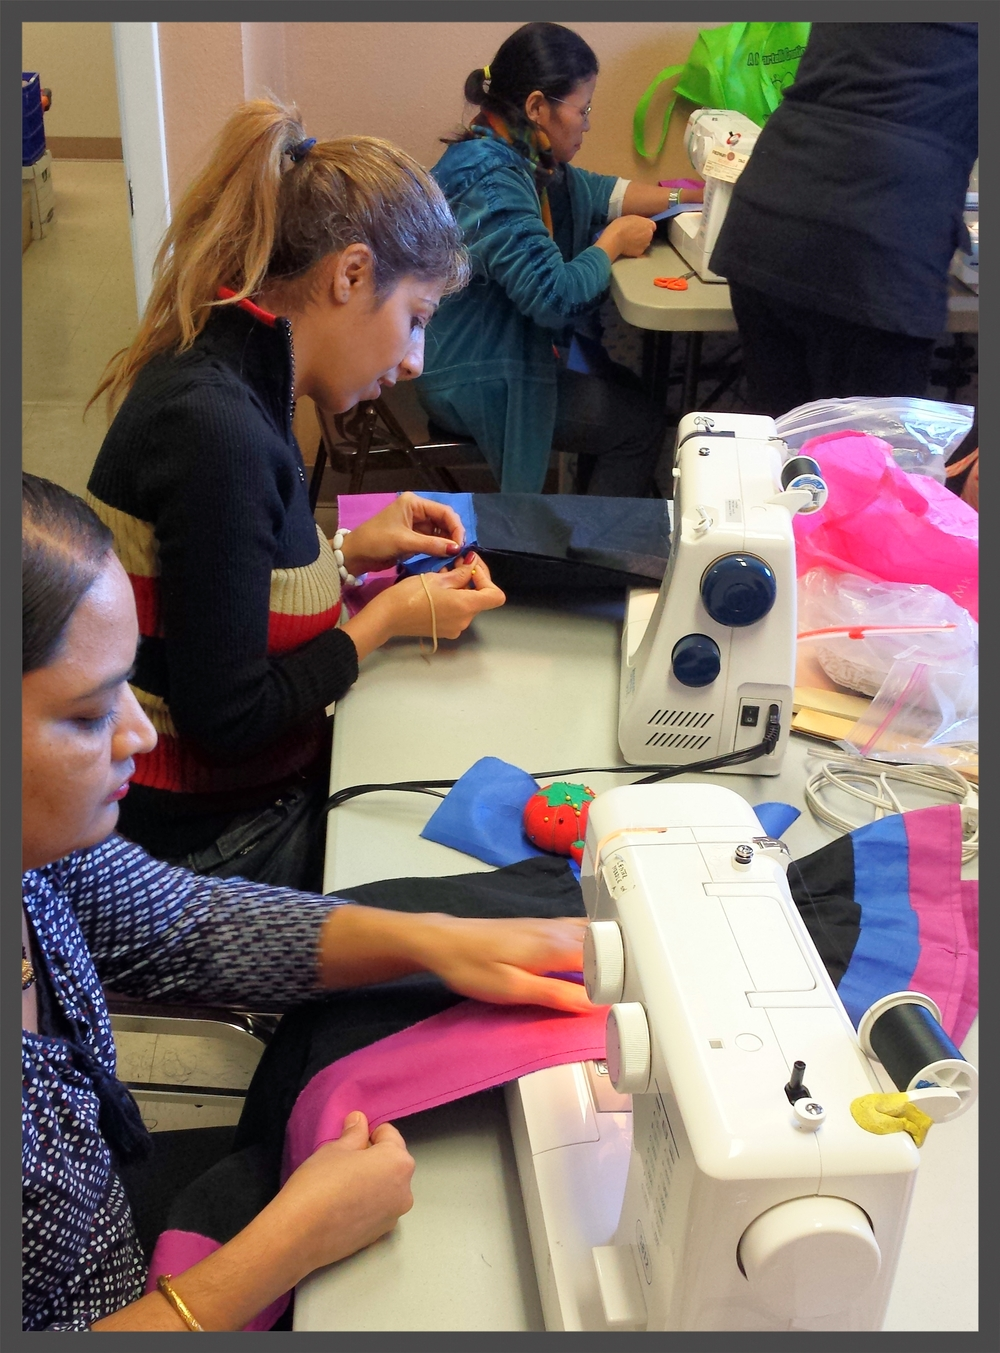 Friday morning sewing class is a fun time to learn and practice sewing skills, and form friendships with women from ALL OVER THE WORLD!